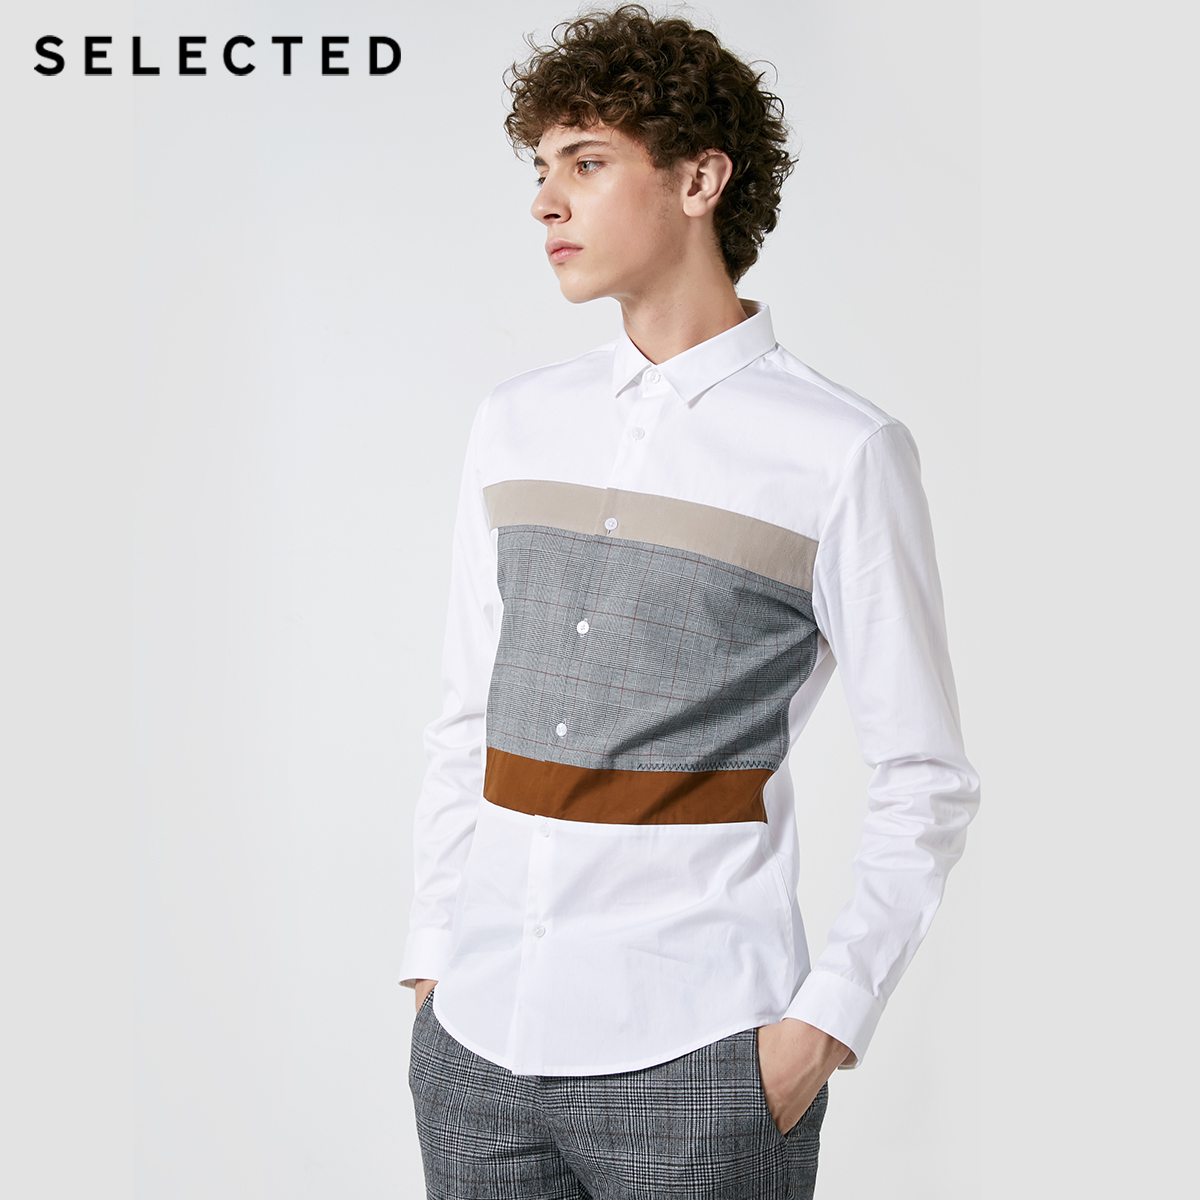 SELECTED New Mens Cotton Lattice Stitching Business Leisure Long Sleeve Shirt S  418405548Casual Shirts